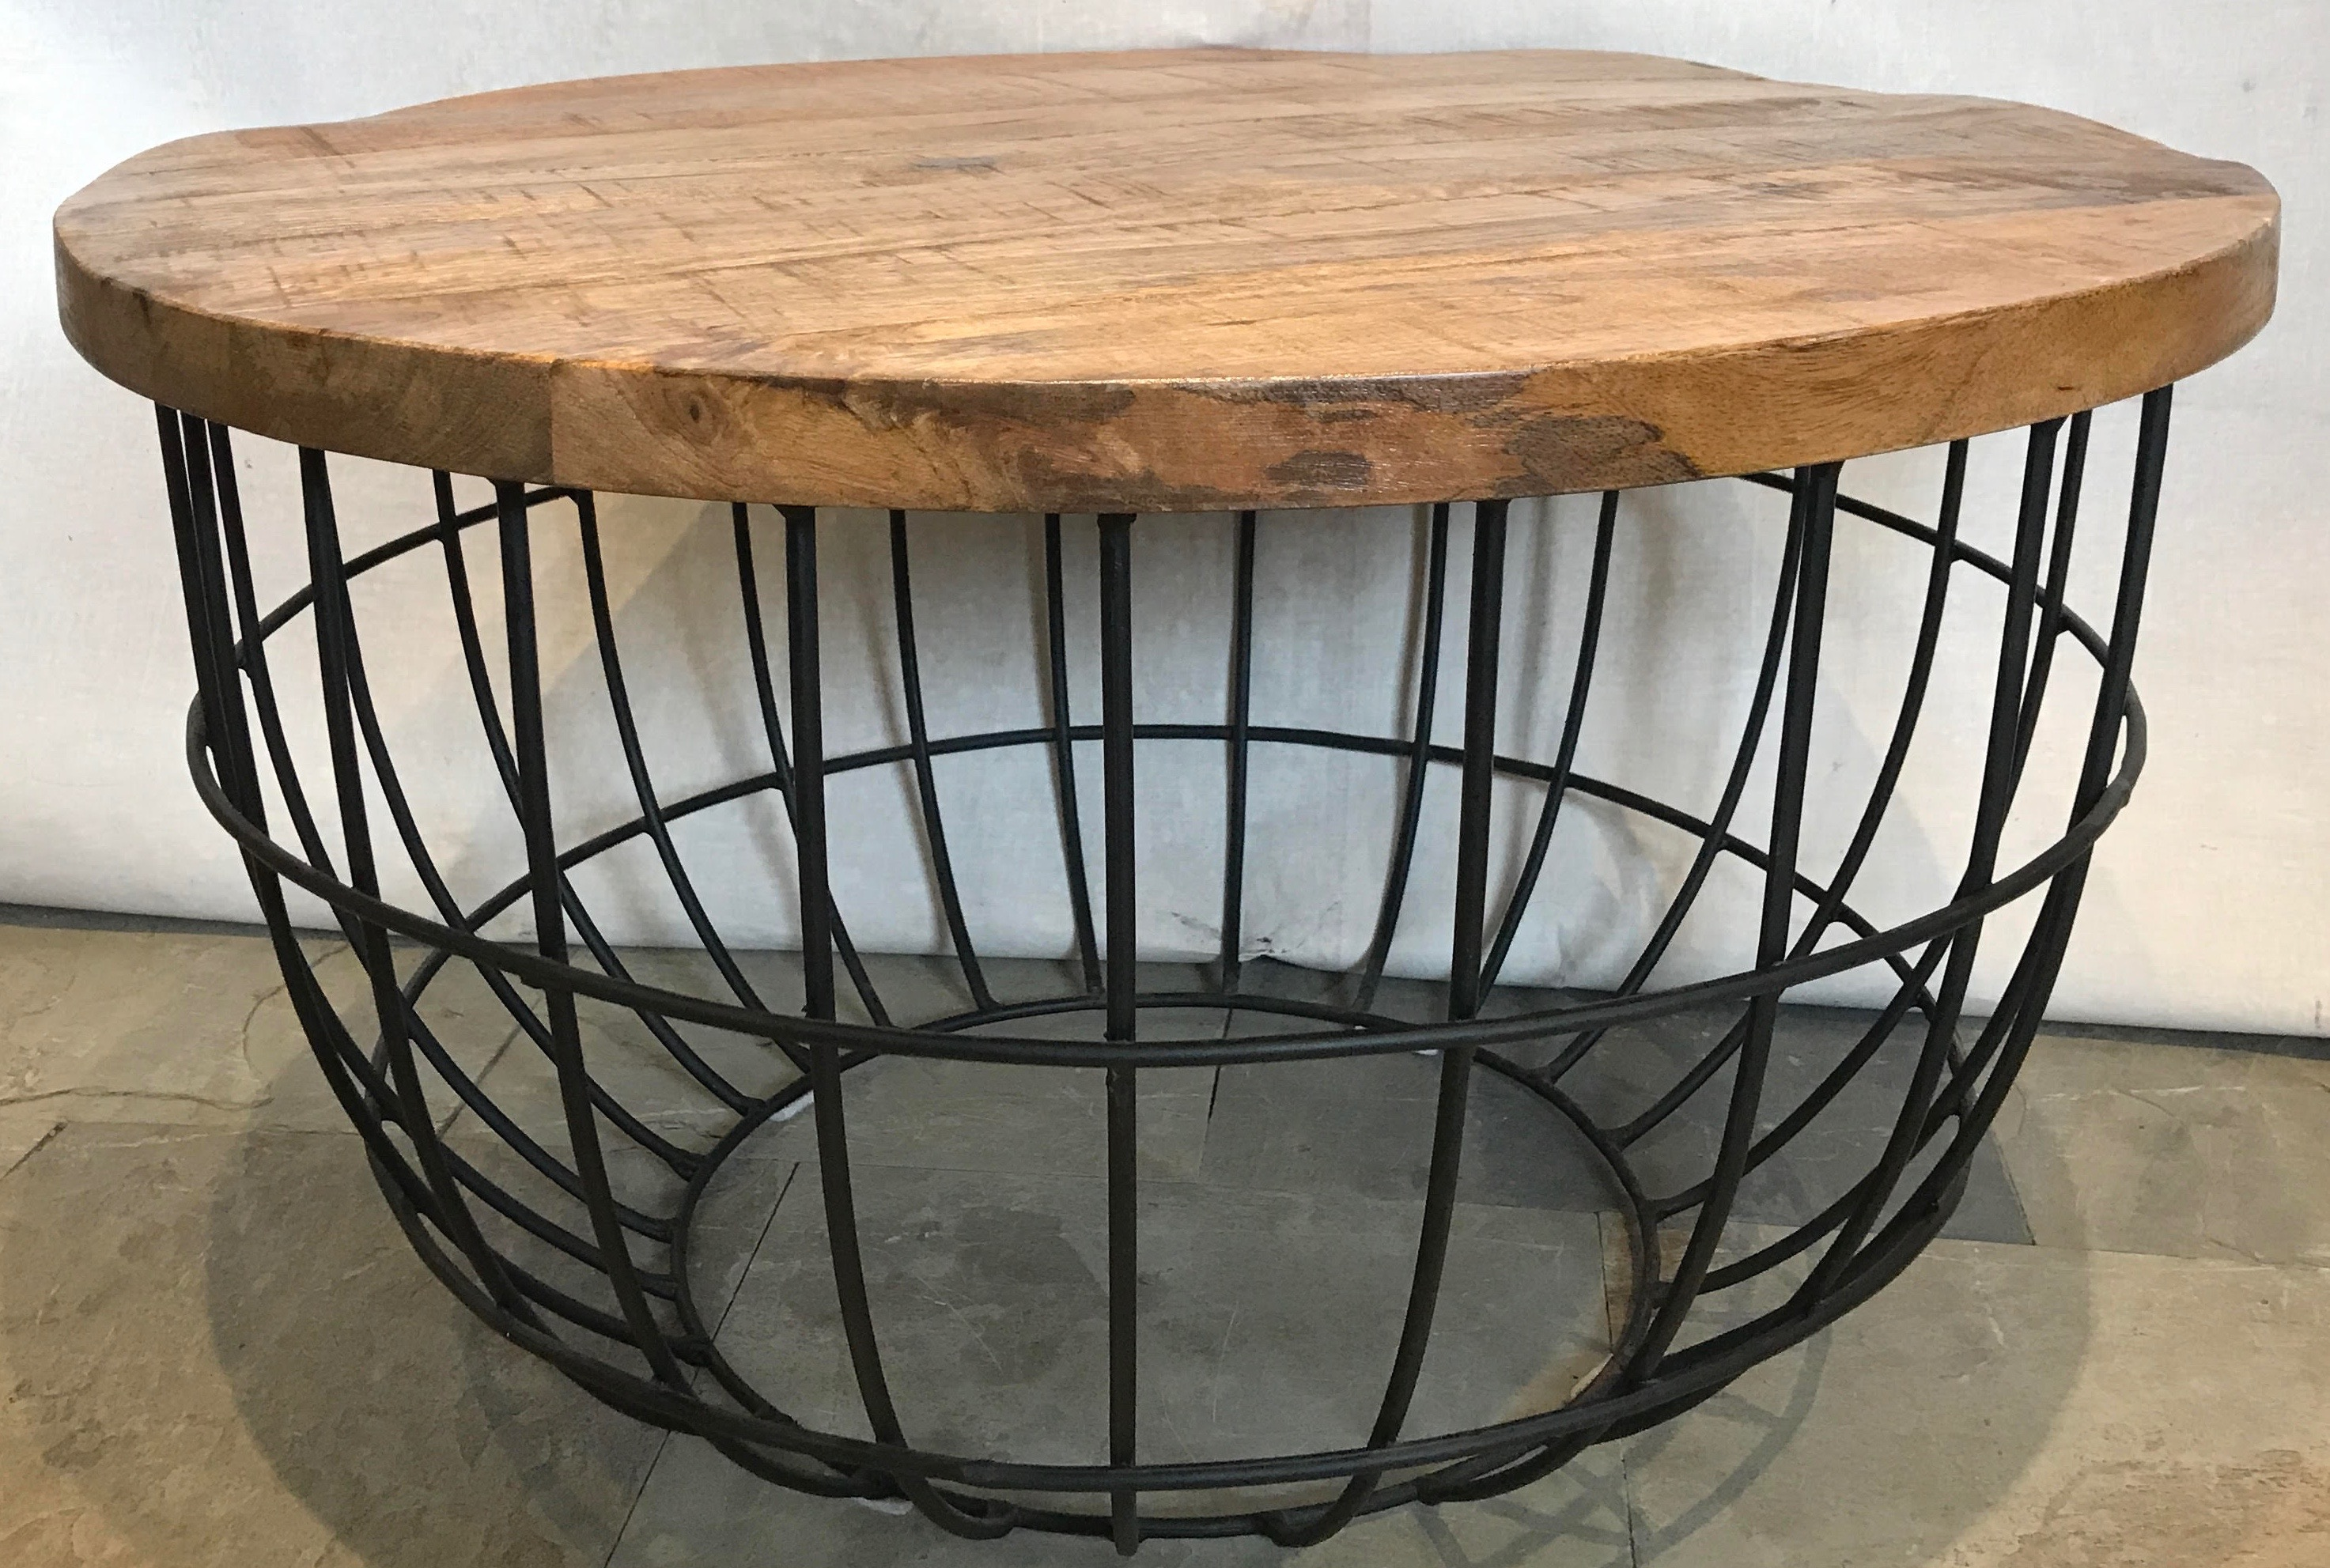 COFFEE TABLE - ROUND WITH IRON FRAME